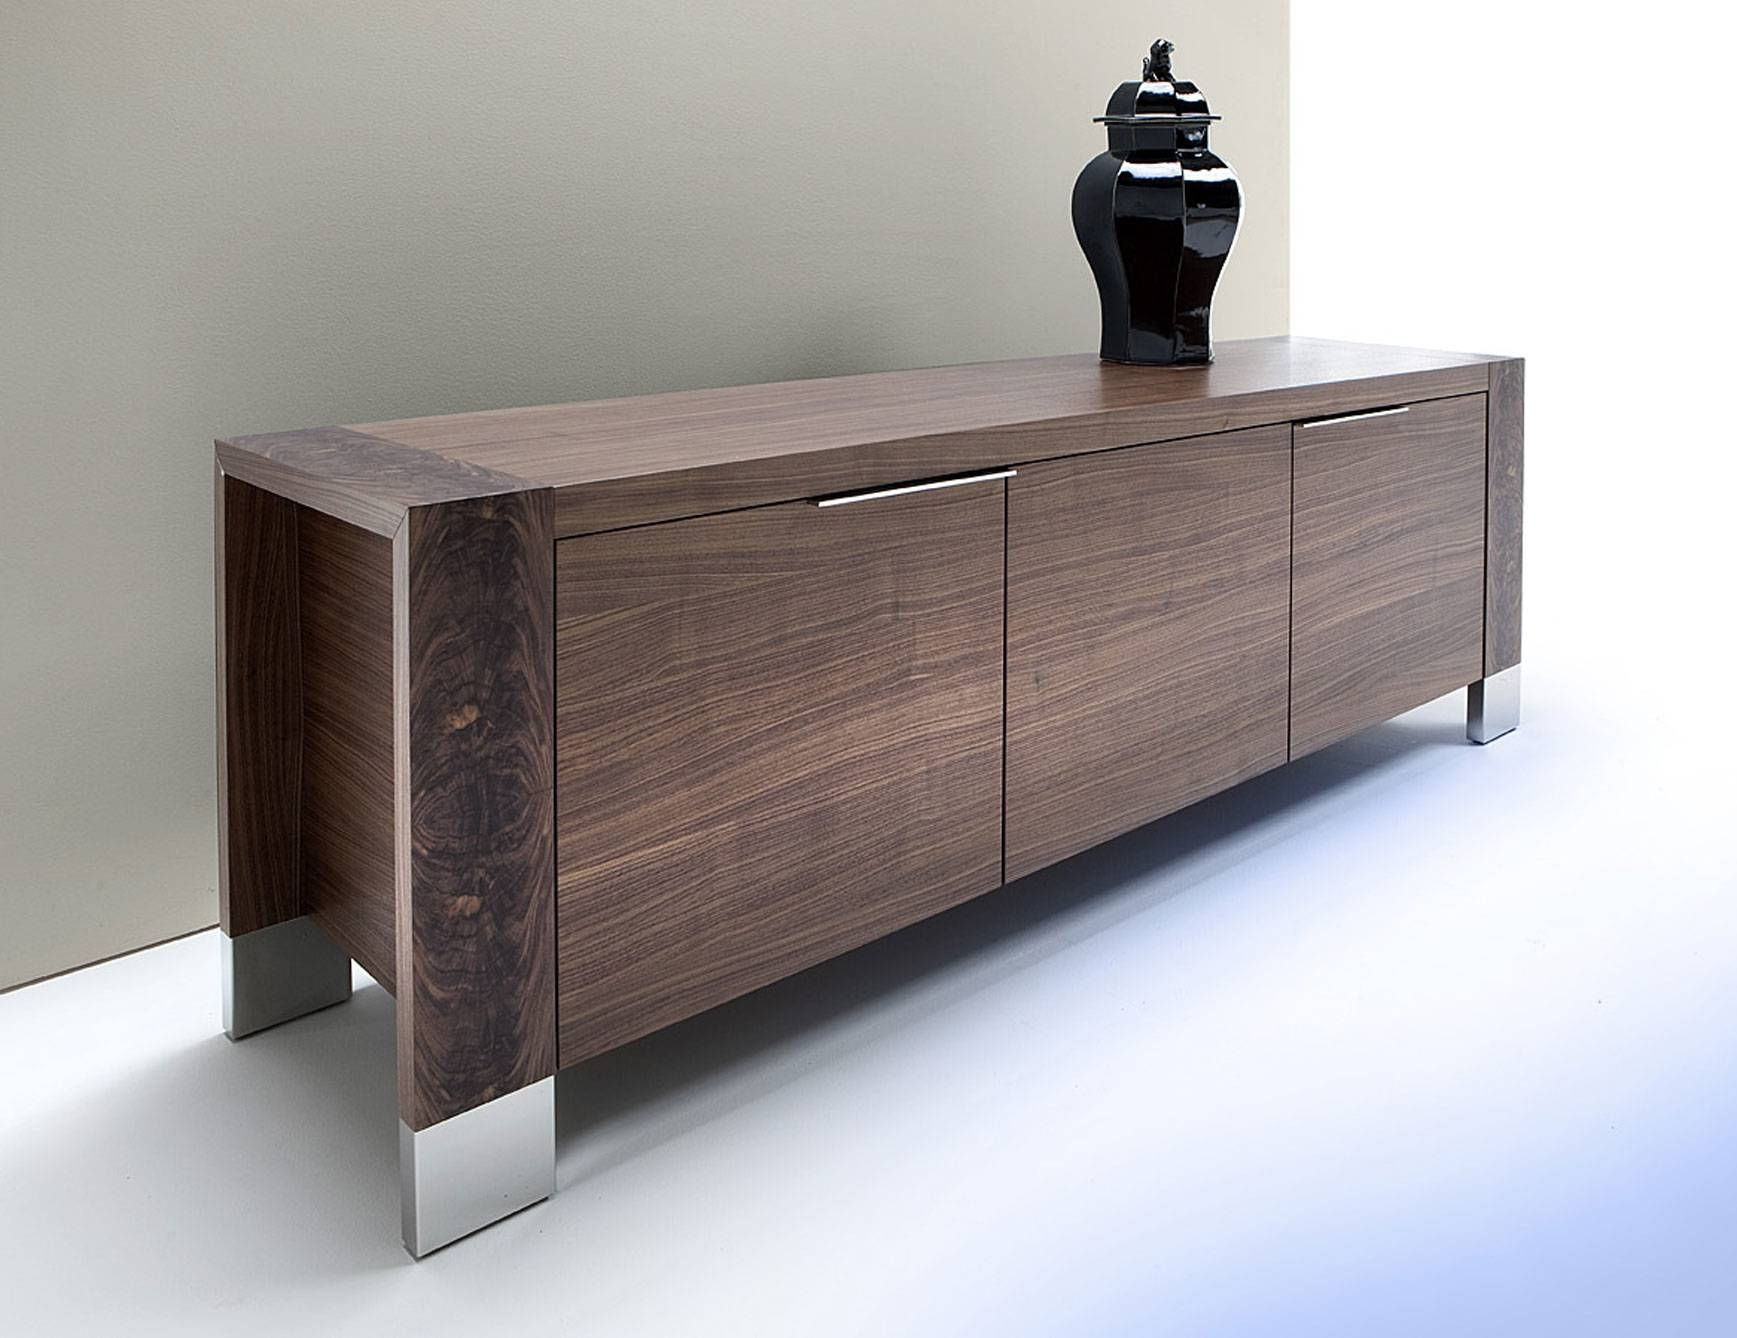 Sideboards: Amusing Buffet Storage Credenza Office Buffet Credenza intended for Credenza Sideboards (Image 13 of 15)